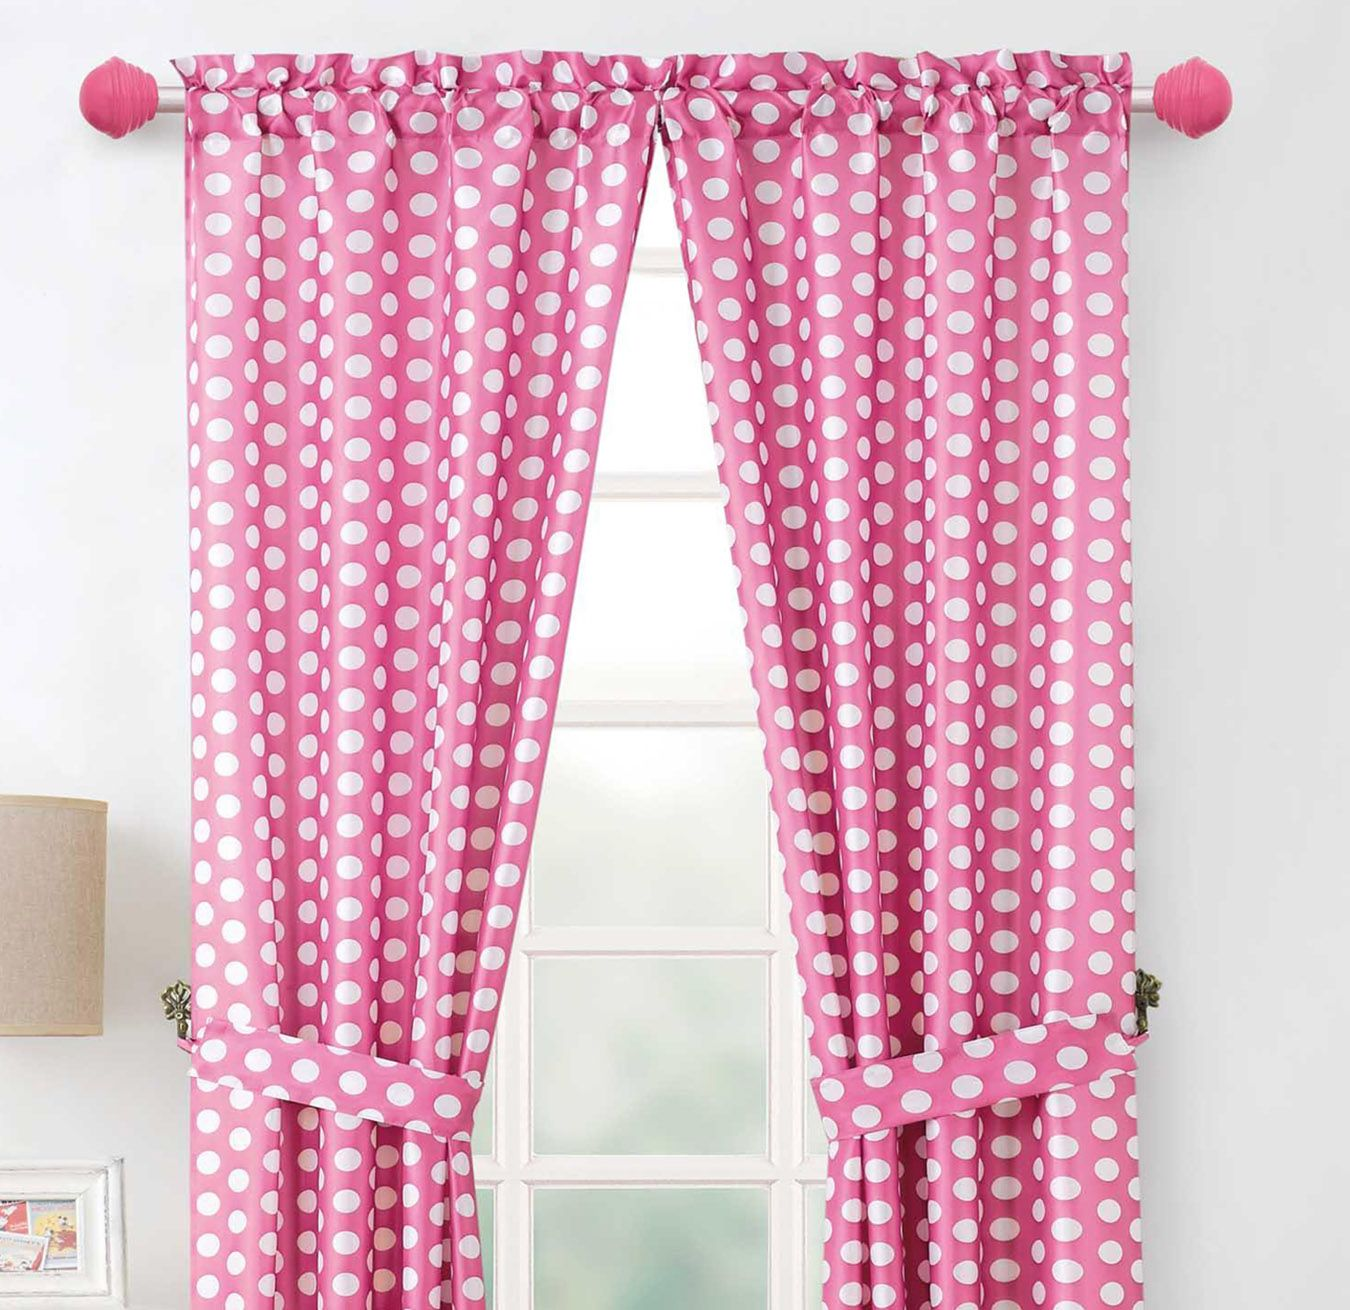 layla-84-inch-polka-dot-curtain-panel-pair-with-tiebacks-fe08a7df-5be4-4fdd-8638-4b781170157a